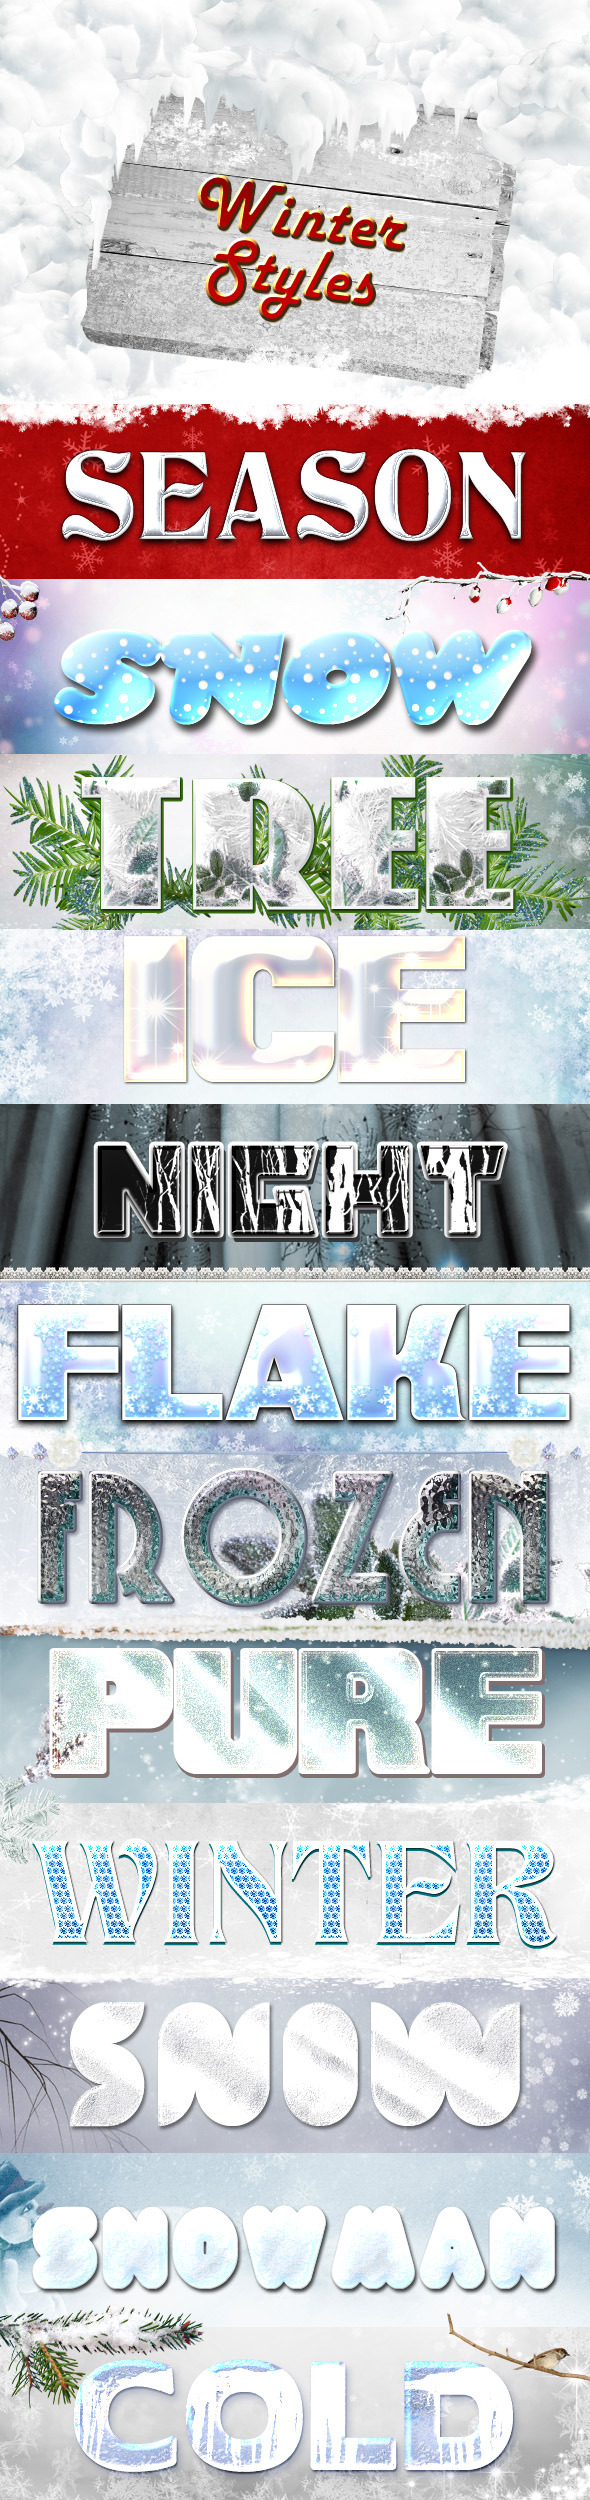 Winter Styles - Text Effects Styles